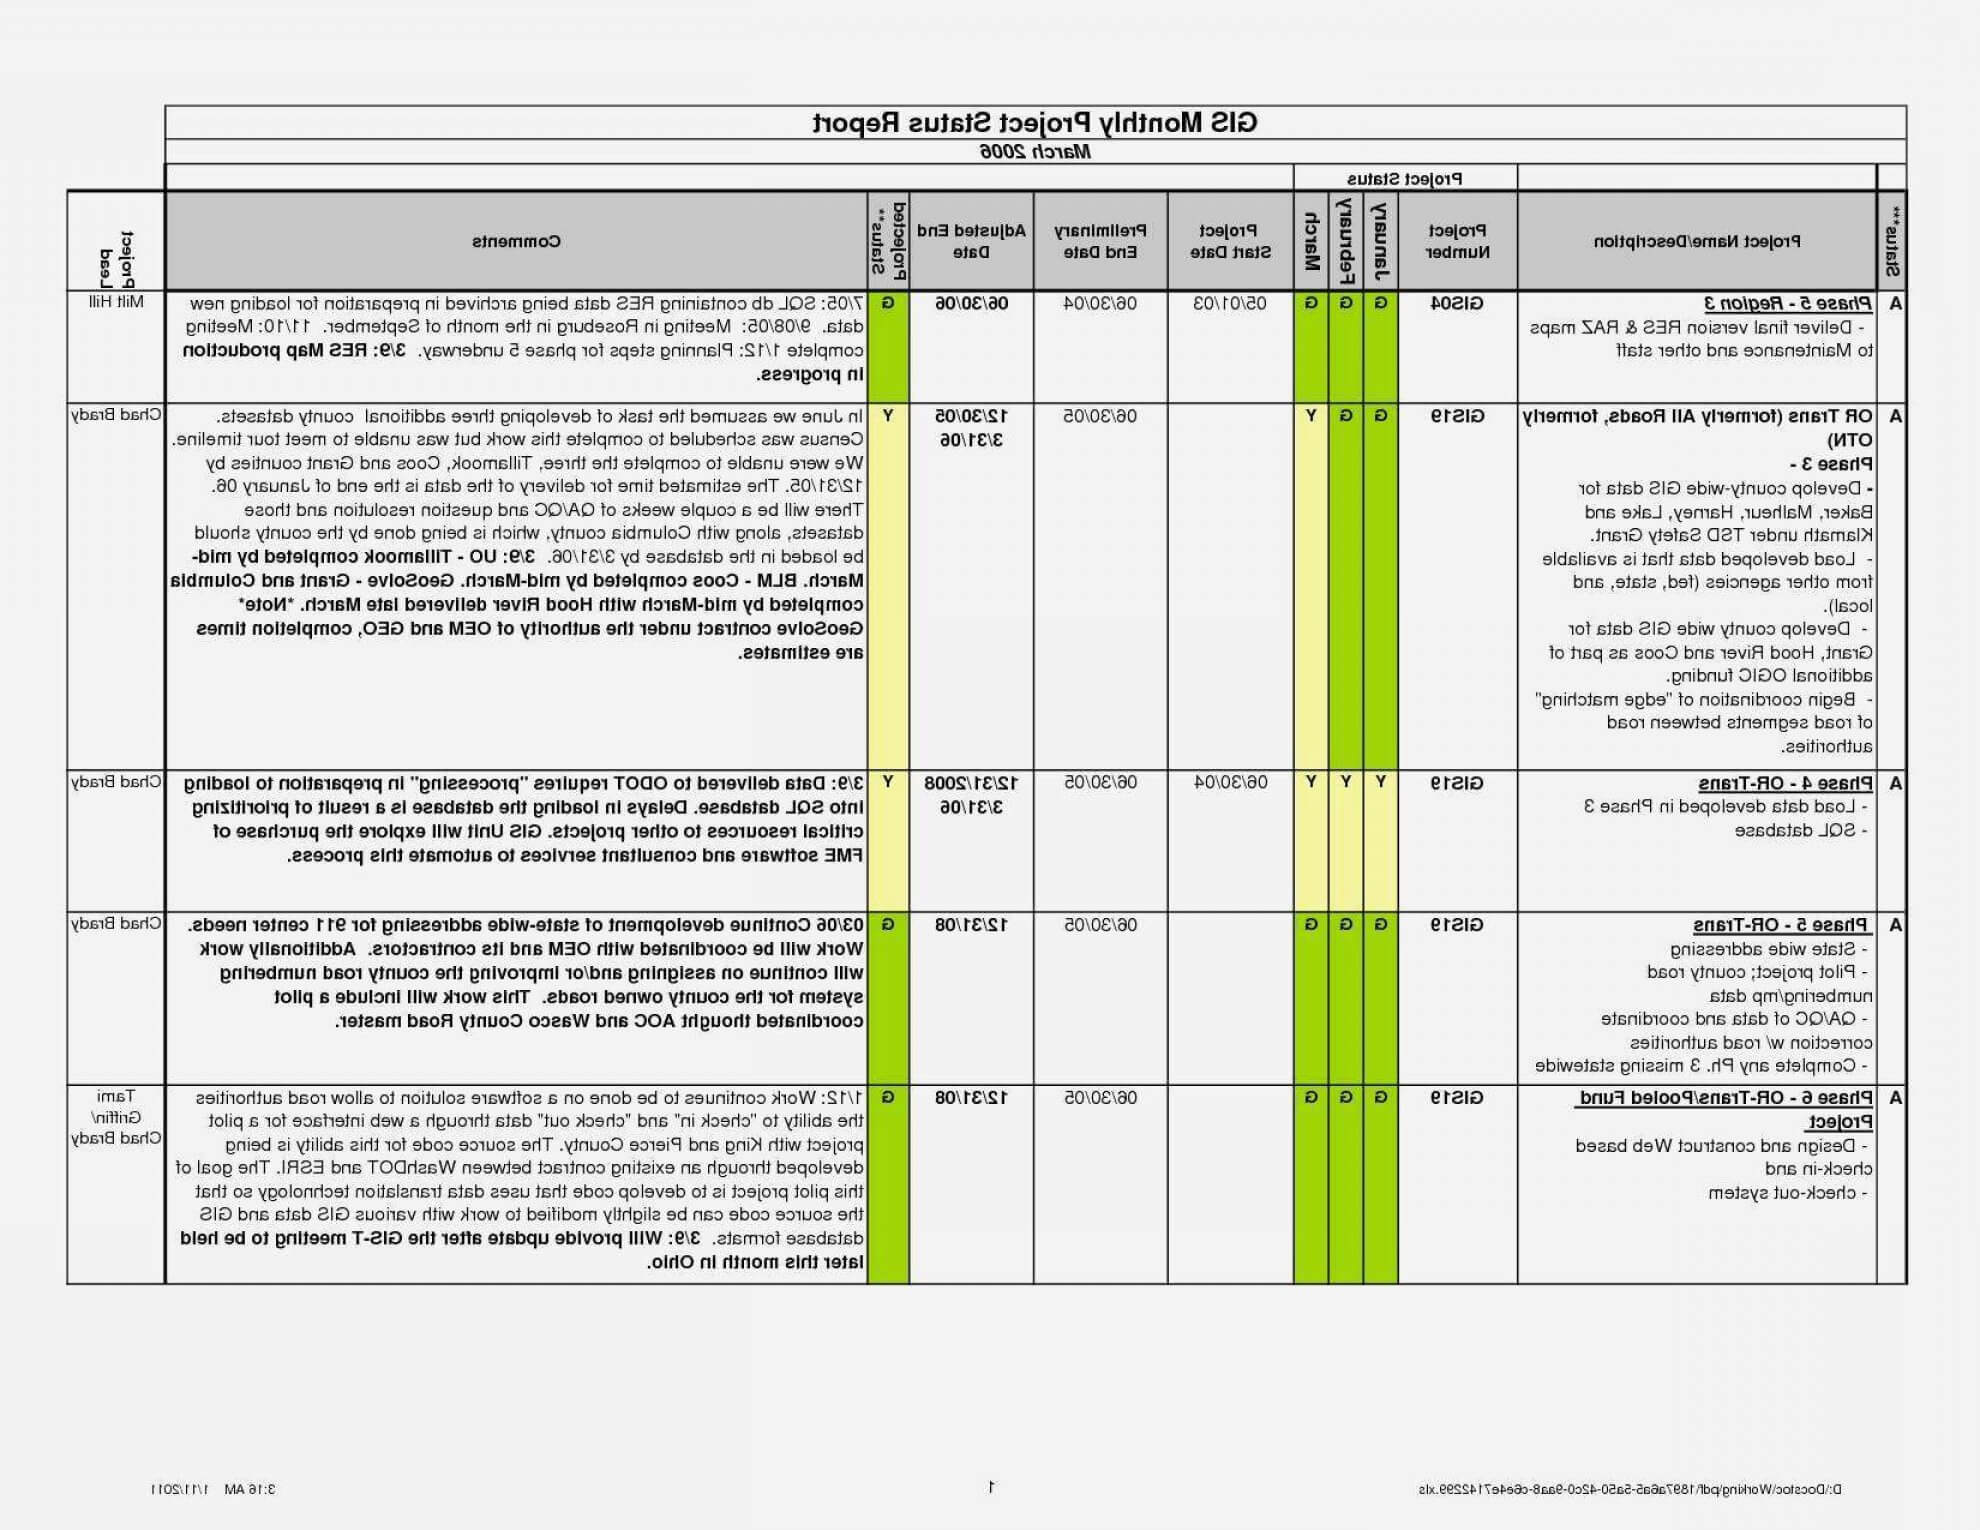 009 Project Management Report Template Excel And Status Regarding Weekly Test Report Template